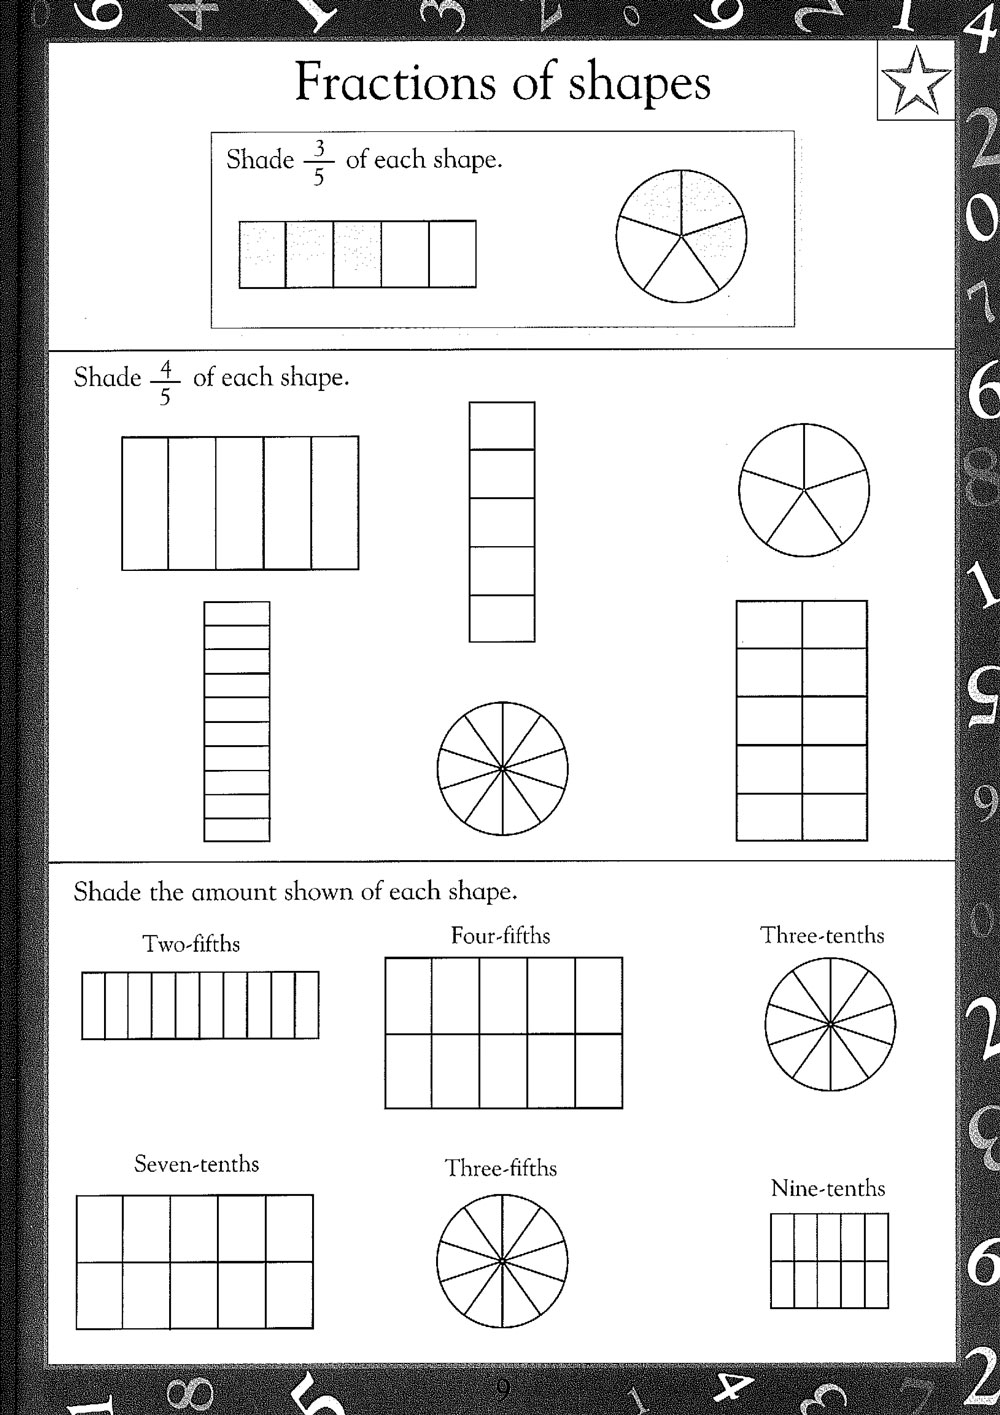 free printable maths worksheets maths worksheets for kids. Black Bedroom Furniture Sets. Home Design Ideas